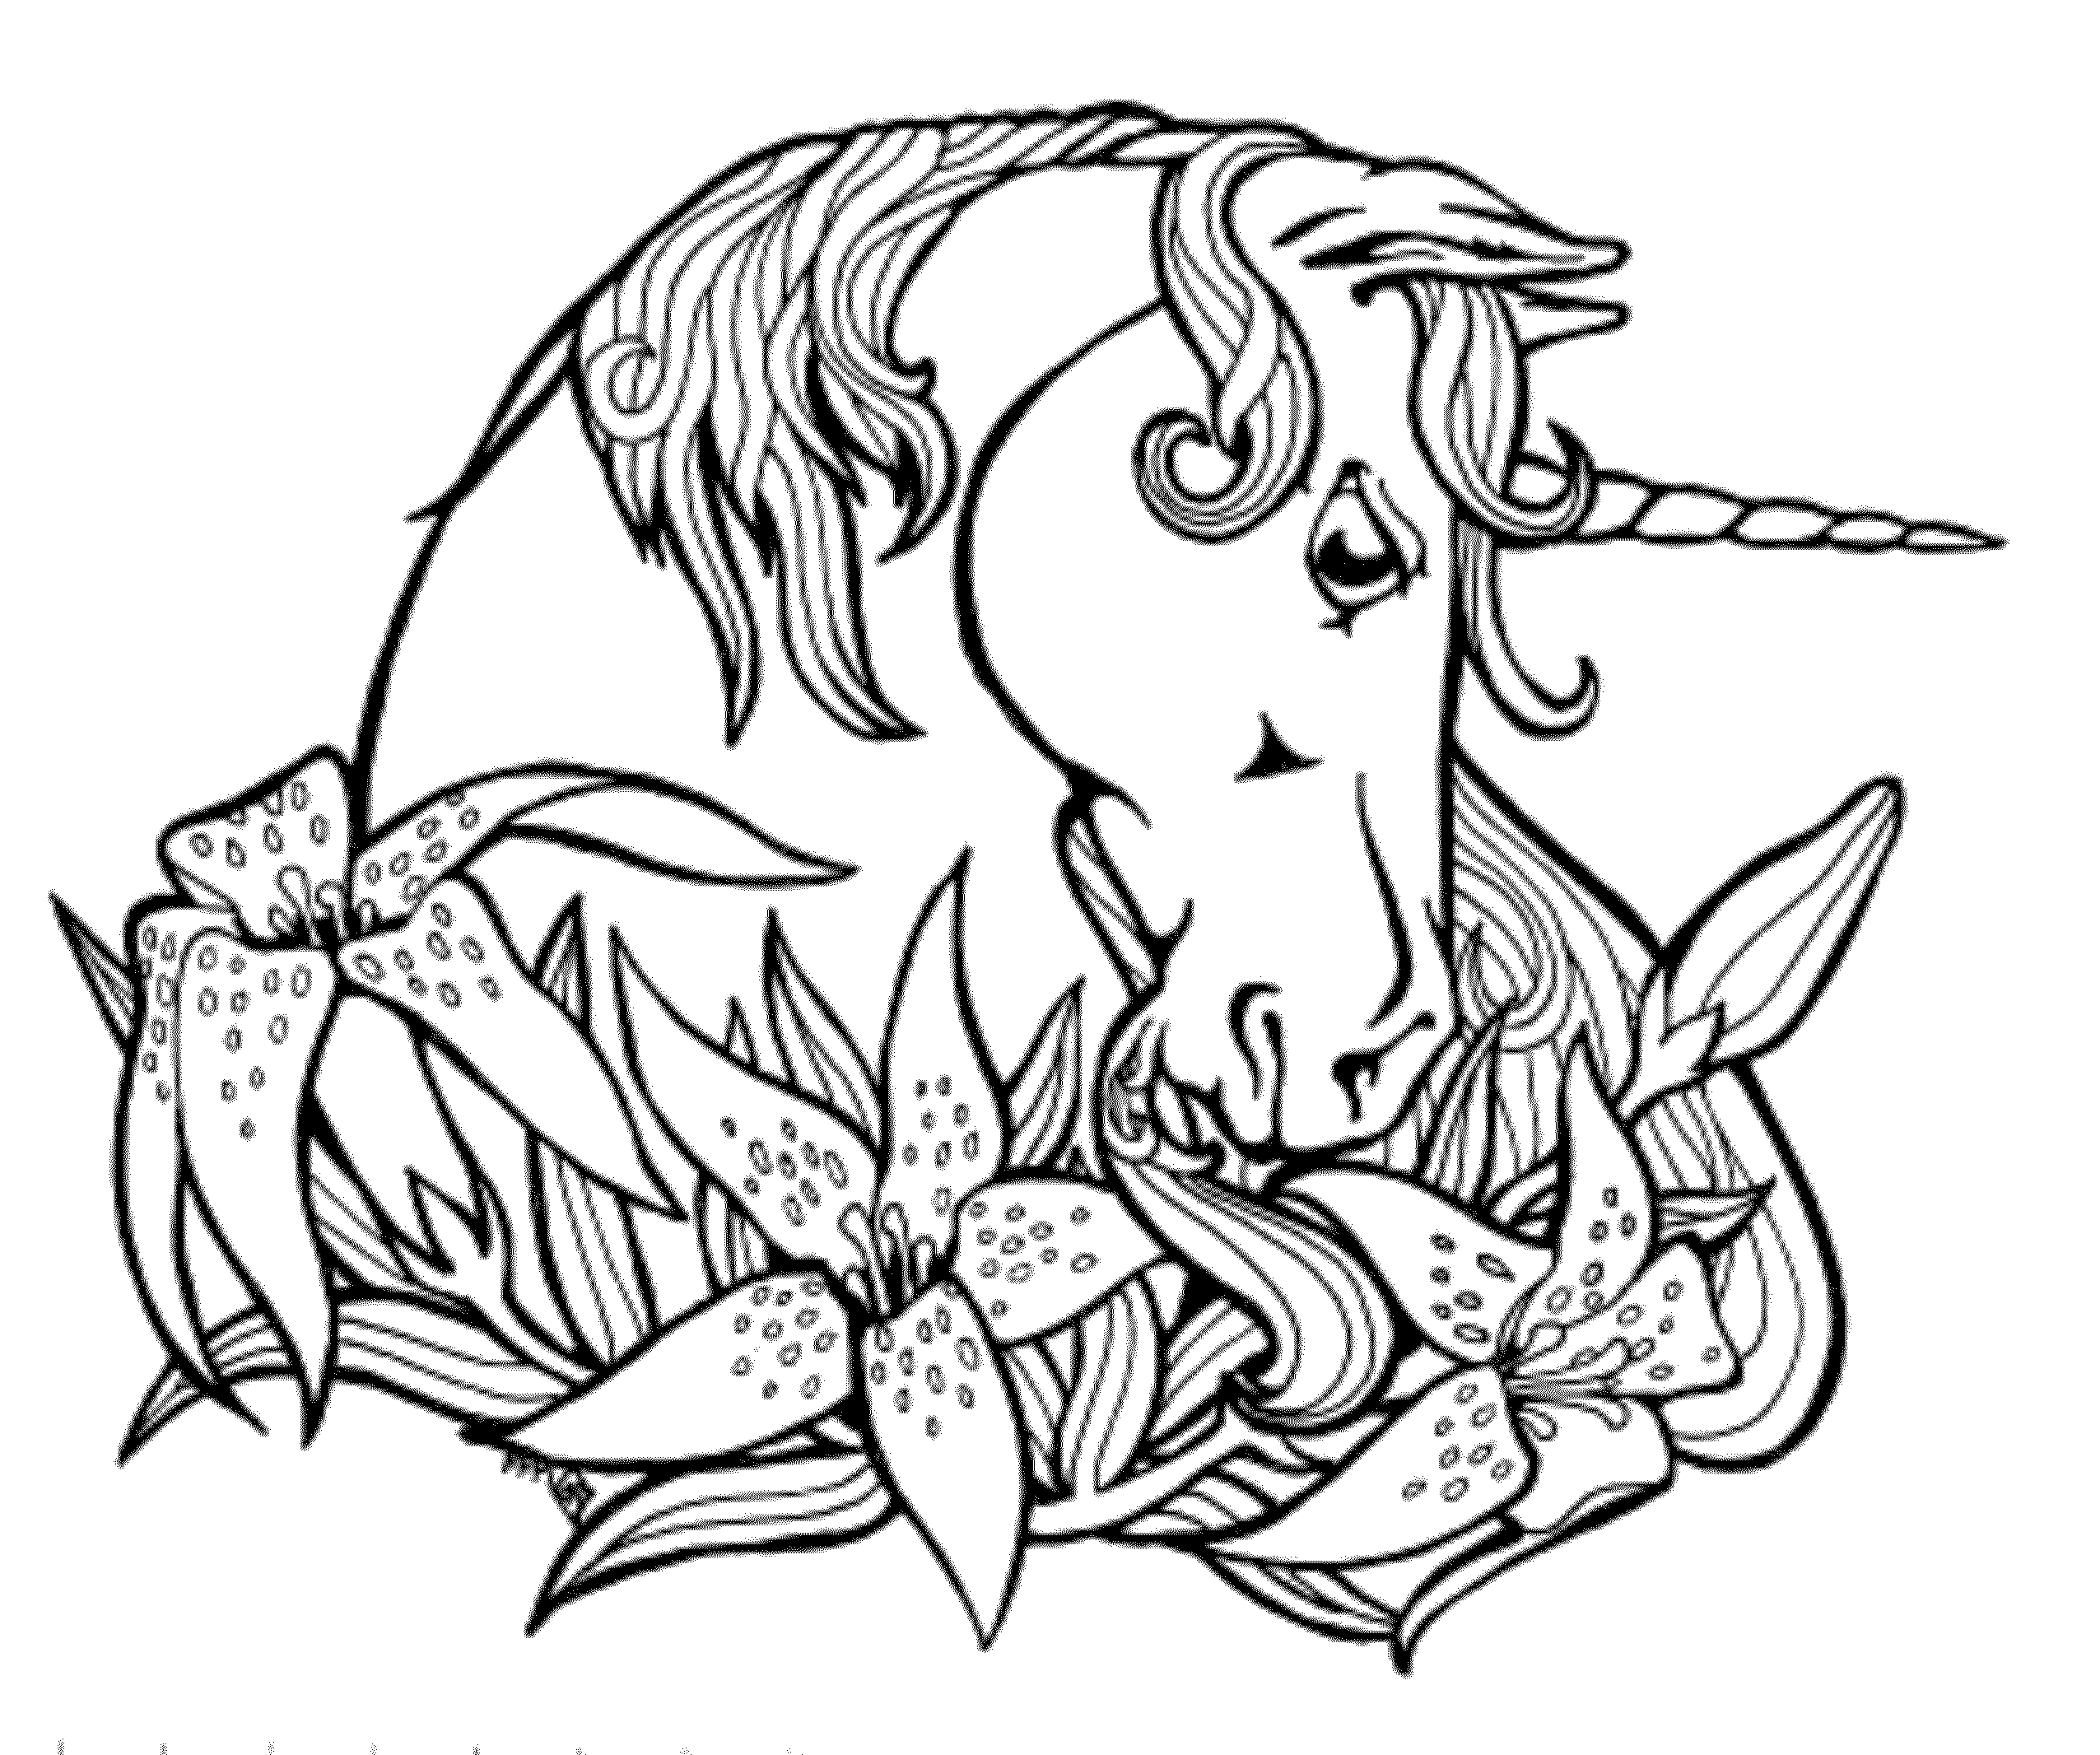 unicorn pictures coloring pages downloadable unicorn colouring page michael o39mara books pictures unicorn coloring pages